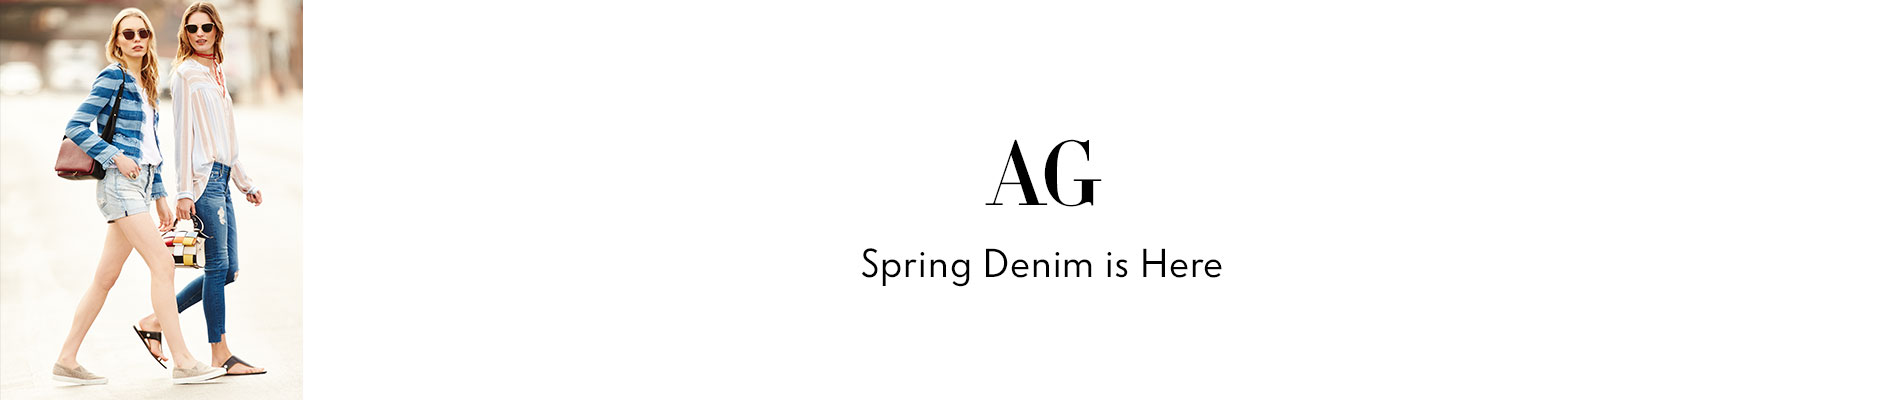 AG - spring denim is here